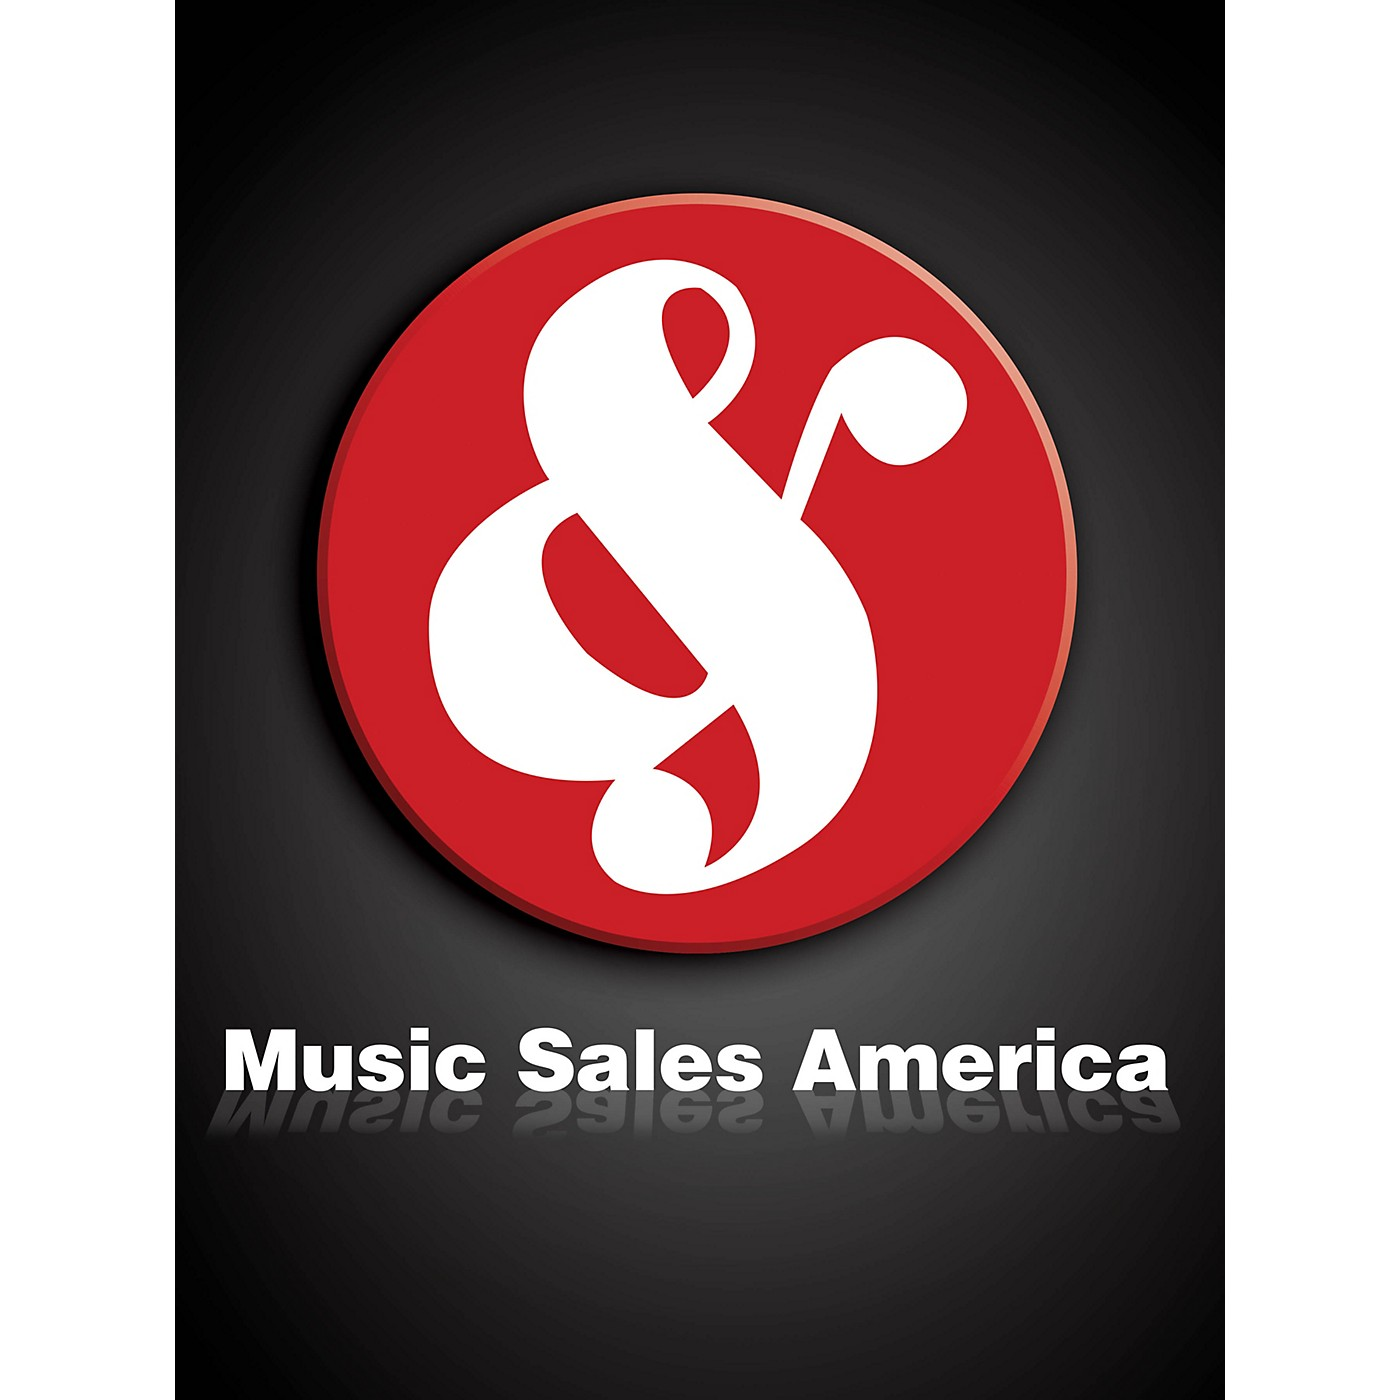 Hal Leonard String Quartet No. 9 - Shiva Dances (Score) Music Sales America Series Softcover Composed by Kevin Volans thumbnail